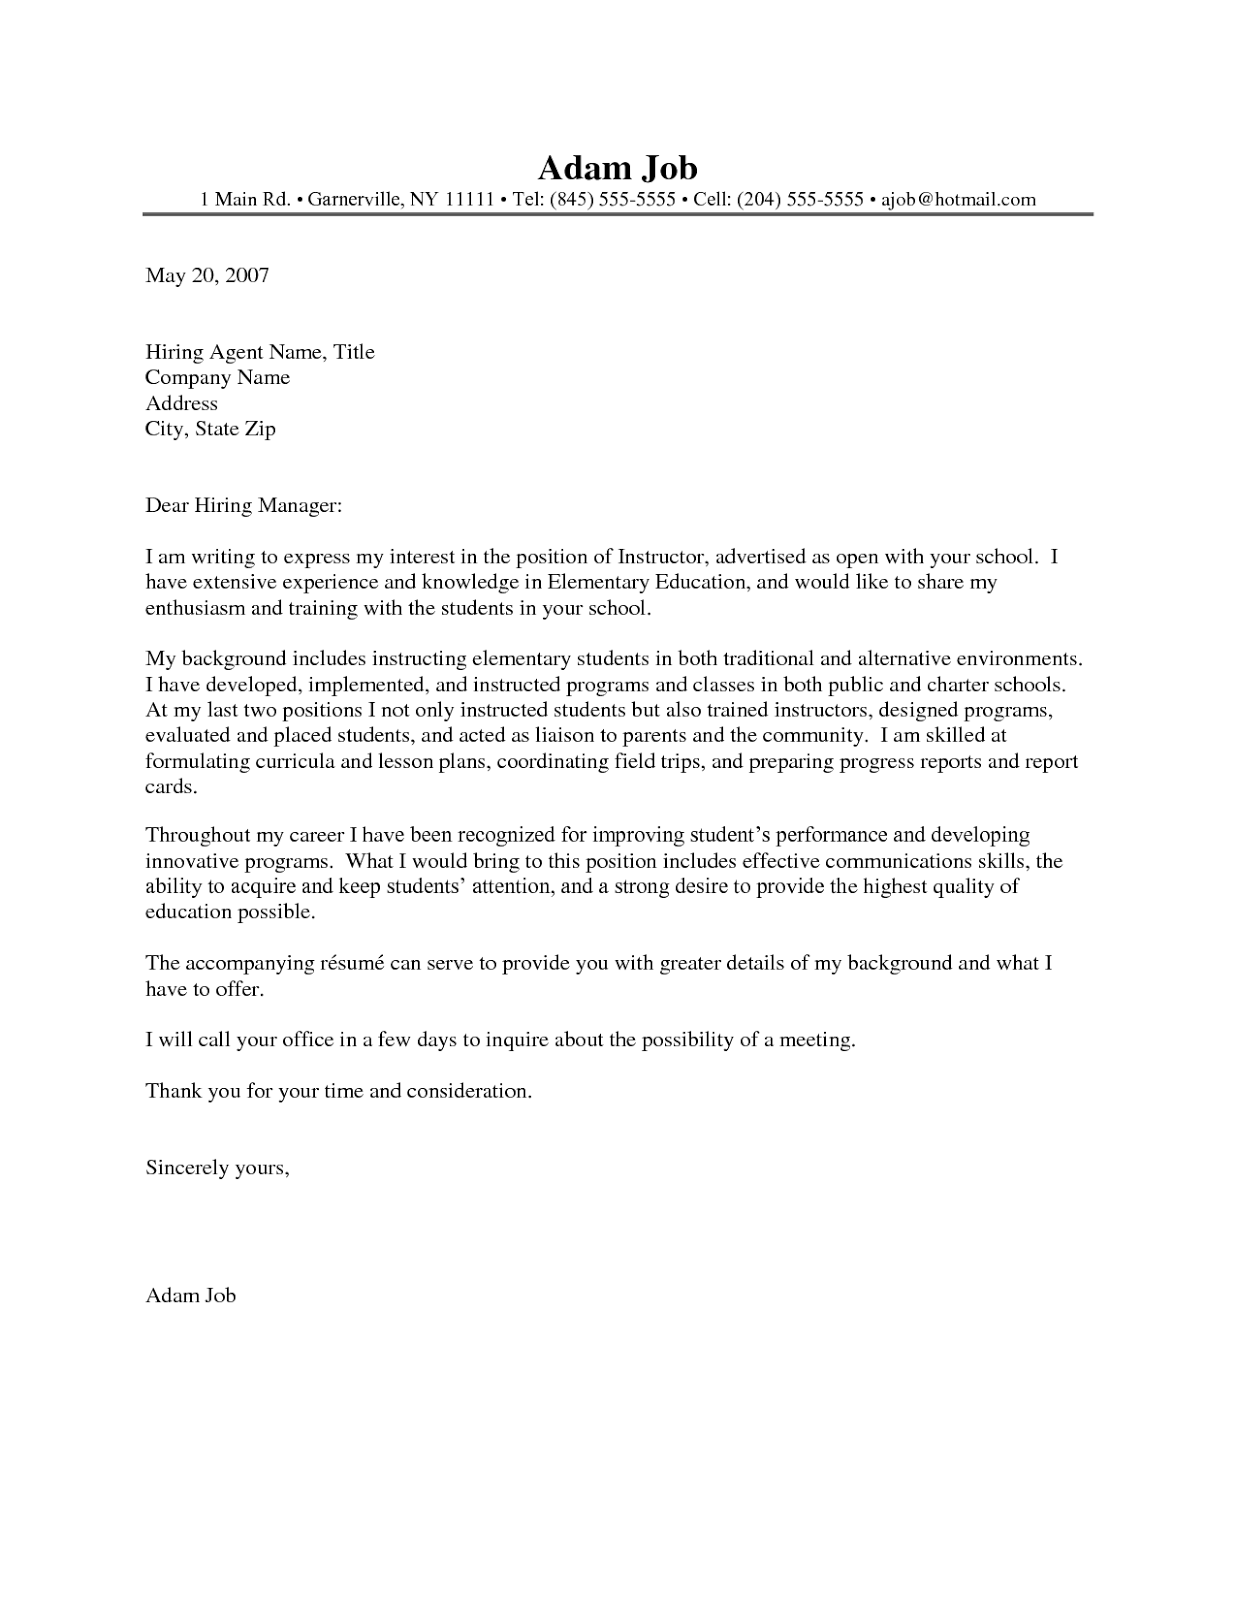 cover letter coaching cover letters pin football coach cover letter example on pinterest - Sample Coaching Cover Letter